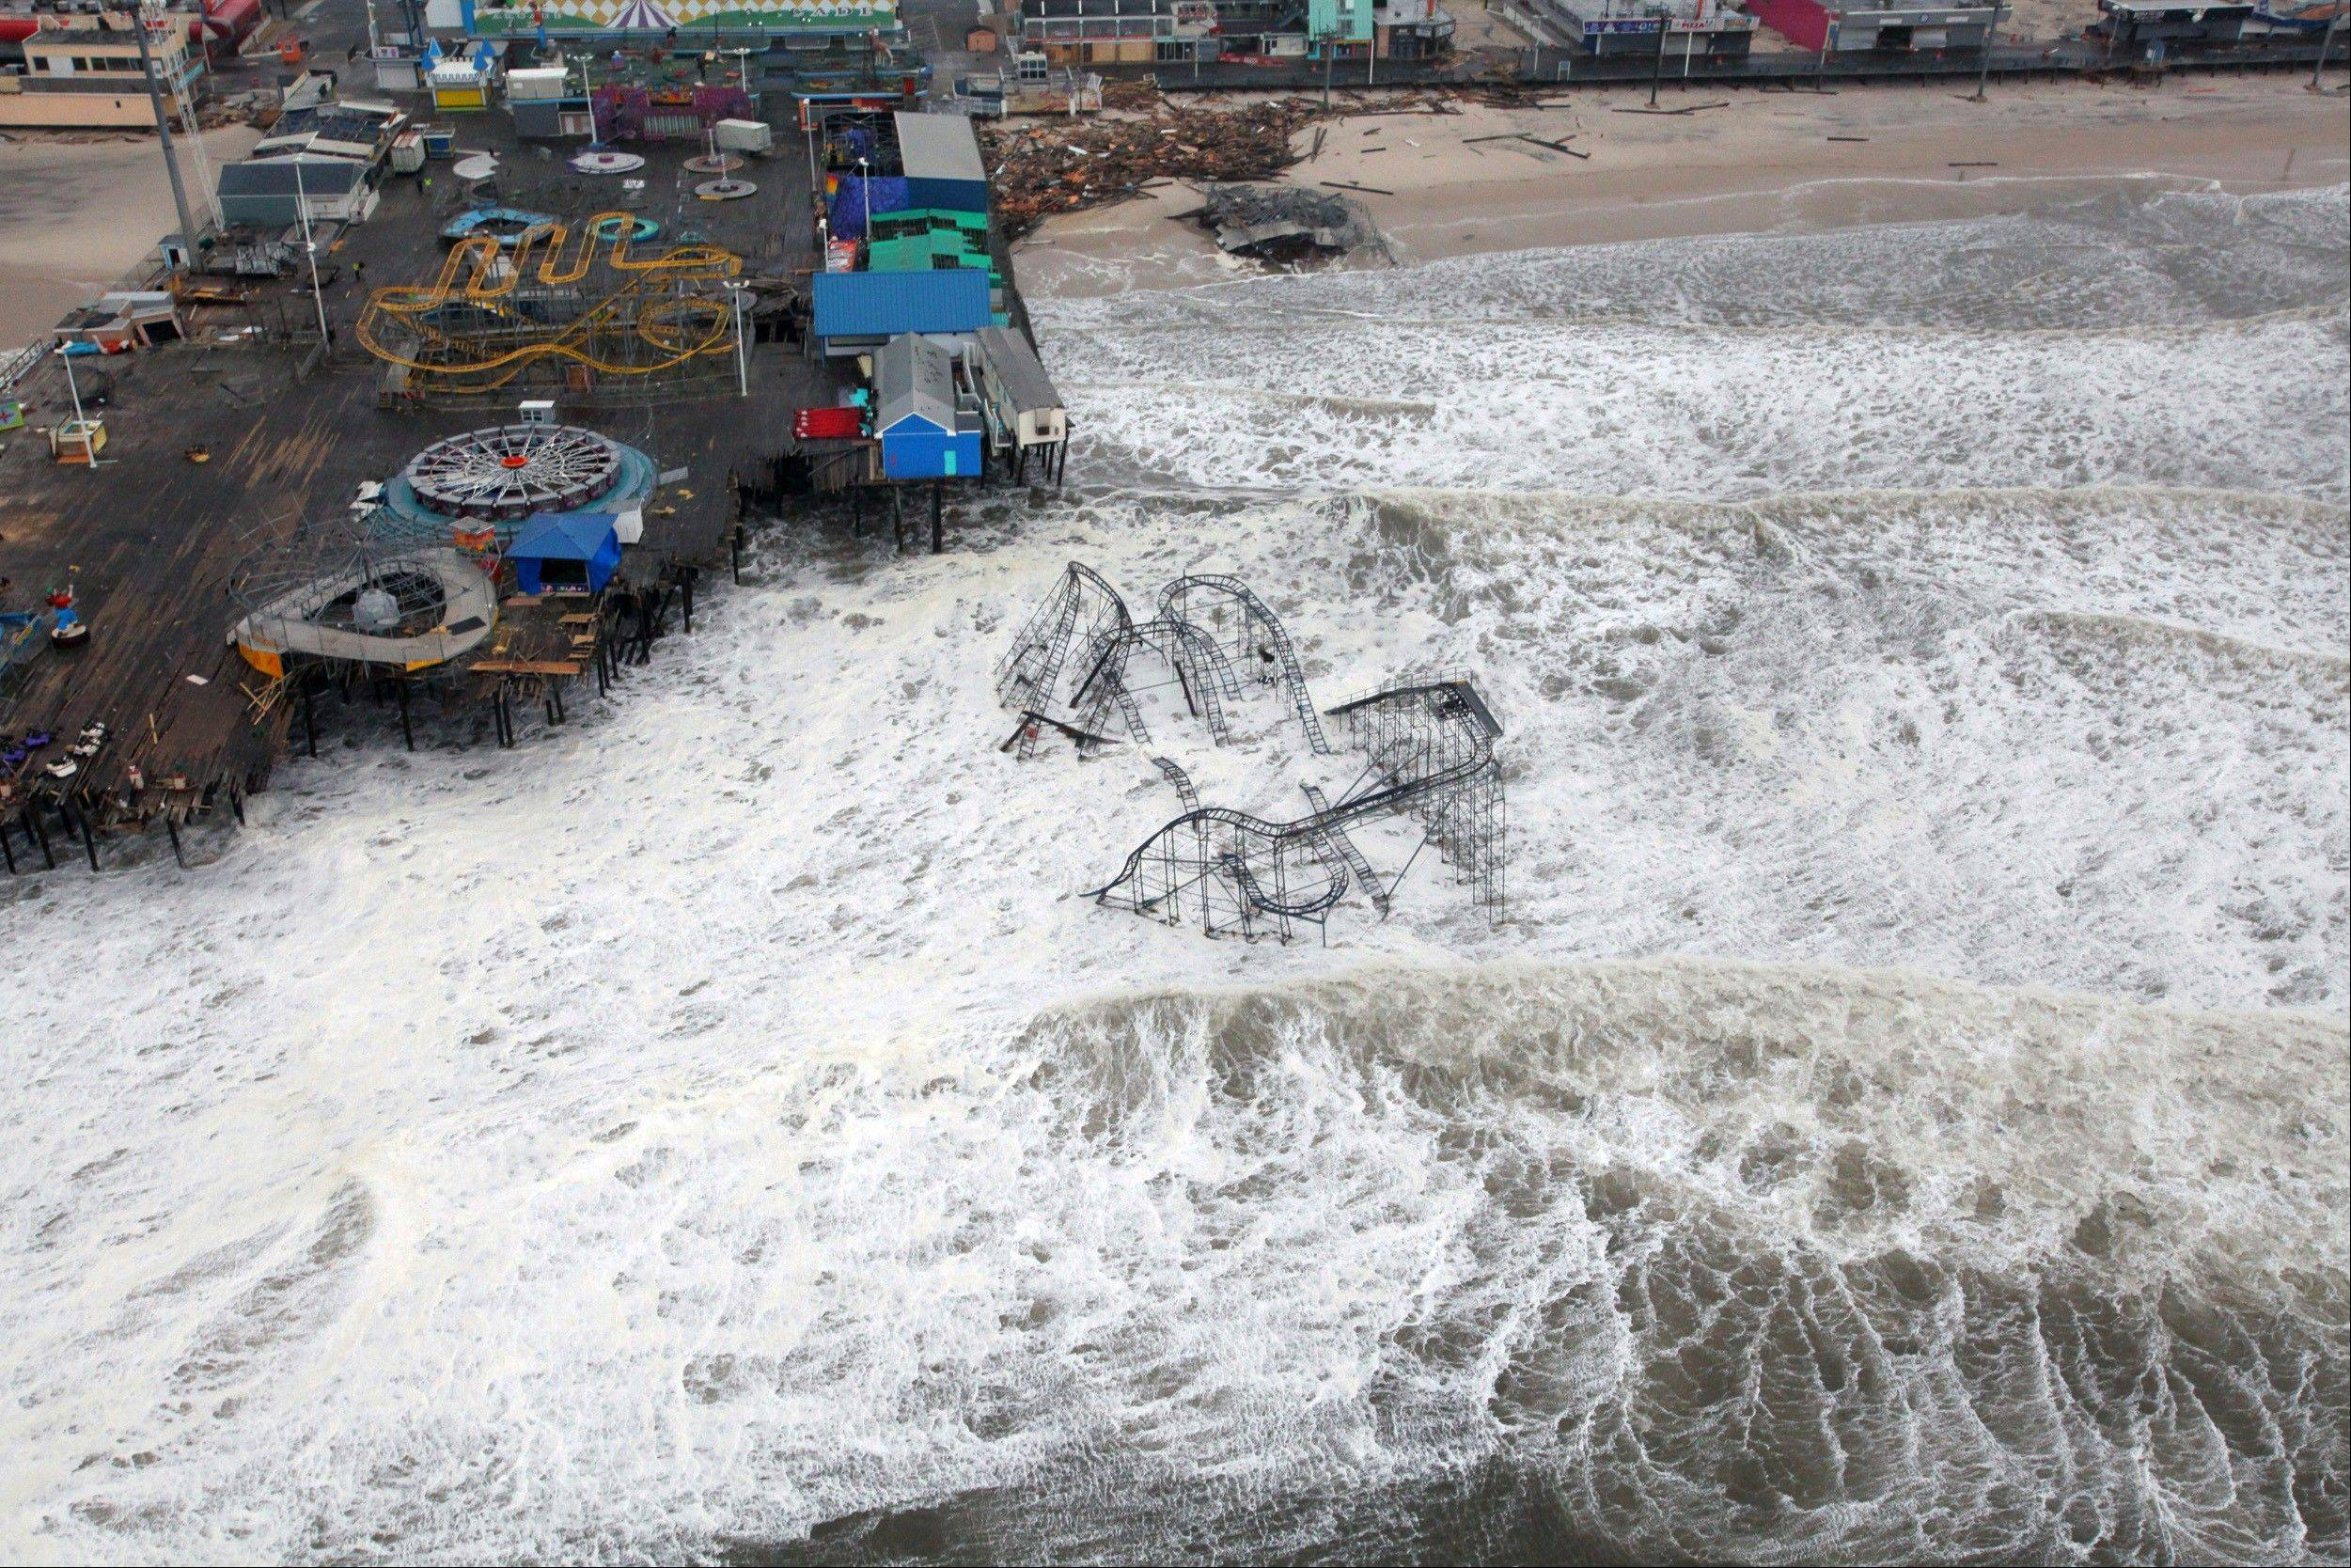 This Tuesday, Oct. 30, 2012 photo provided by the U.S. Air Force shows an aerial view of the roller coaster from the Seaside Heights amusement park on the New Jersey shore submerged in surf, taken during a search and rescue mission by 1-150 Assault Helicopter Battalion, New Jersey Army National Guard. By late Tuesday, the winds and flooding inflicted by the fast-weakening superstorm Sandy had subsided, leaving at least 55 people dead along the Atlantic Coast and splintering beachfront homes and boardwalks from the mid-Atlantic states to southern New England.